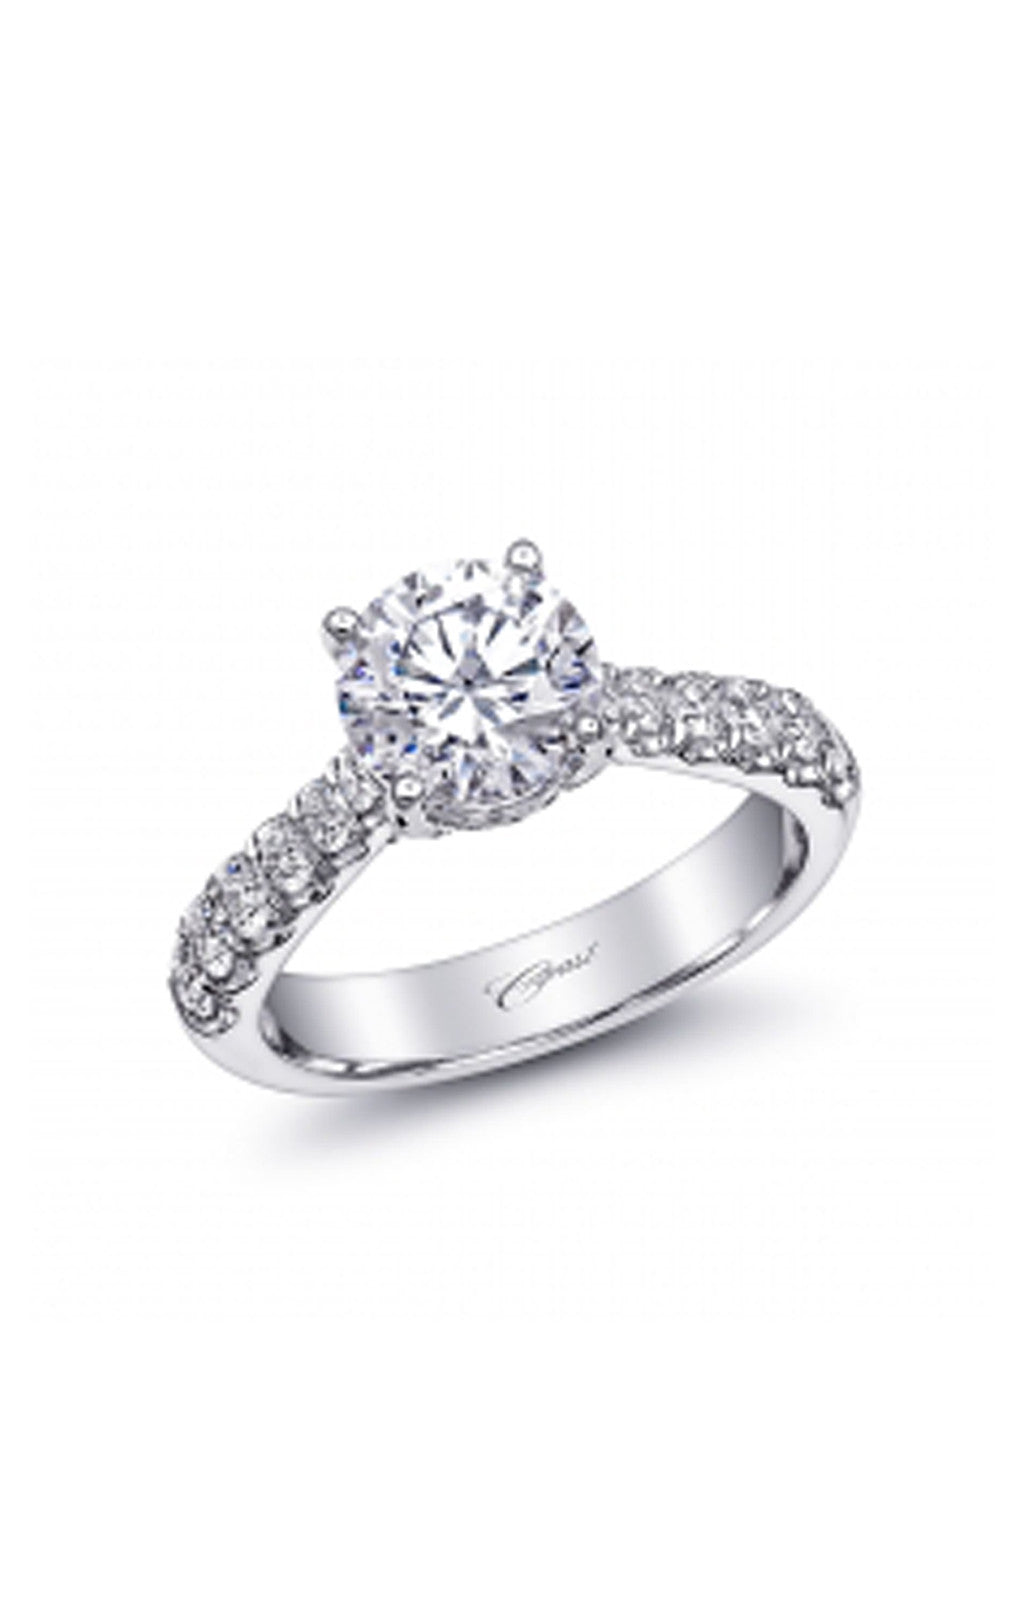 Fishtail White Engagement Ring with Diamonds